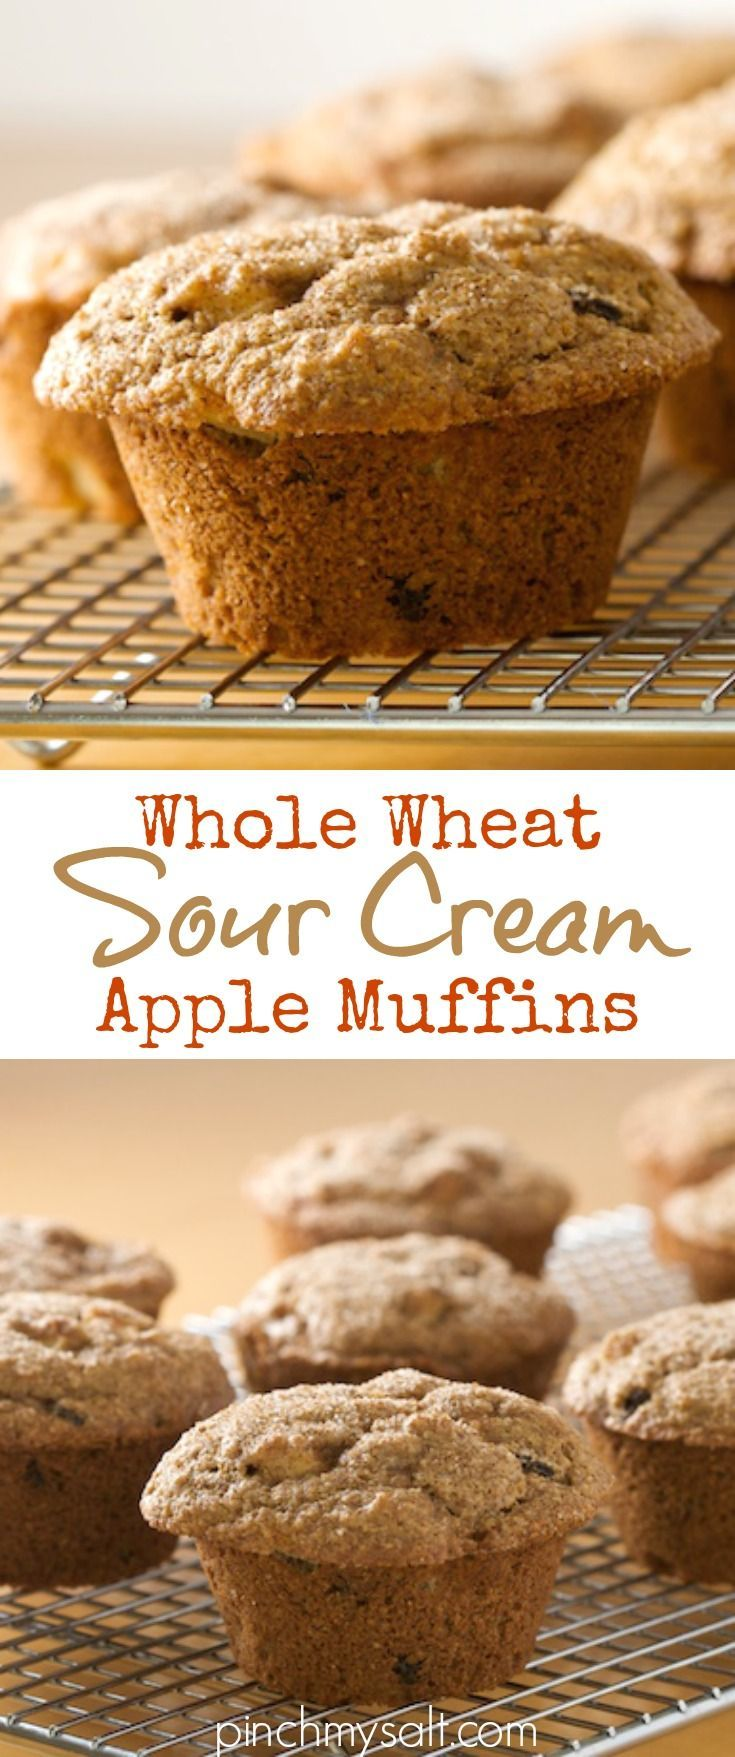 Whole Wheat Sour Cream Apple Muffins Recipe Recipe Apple Muffin Recipes Sour Cream Banana Muffins Apple Muffins